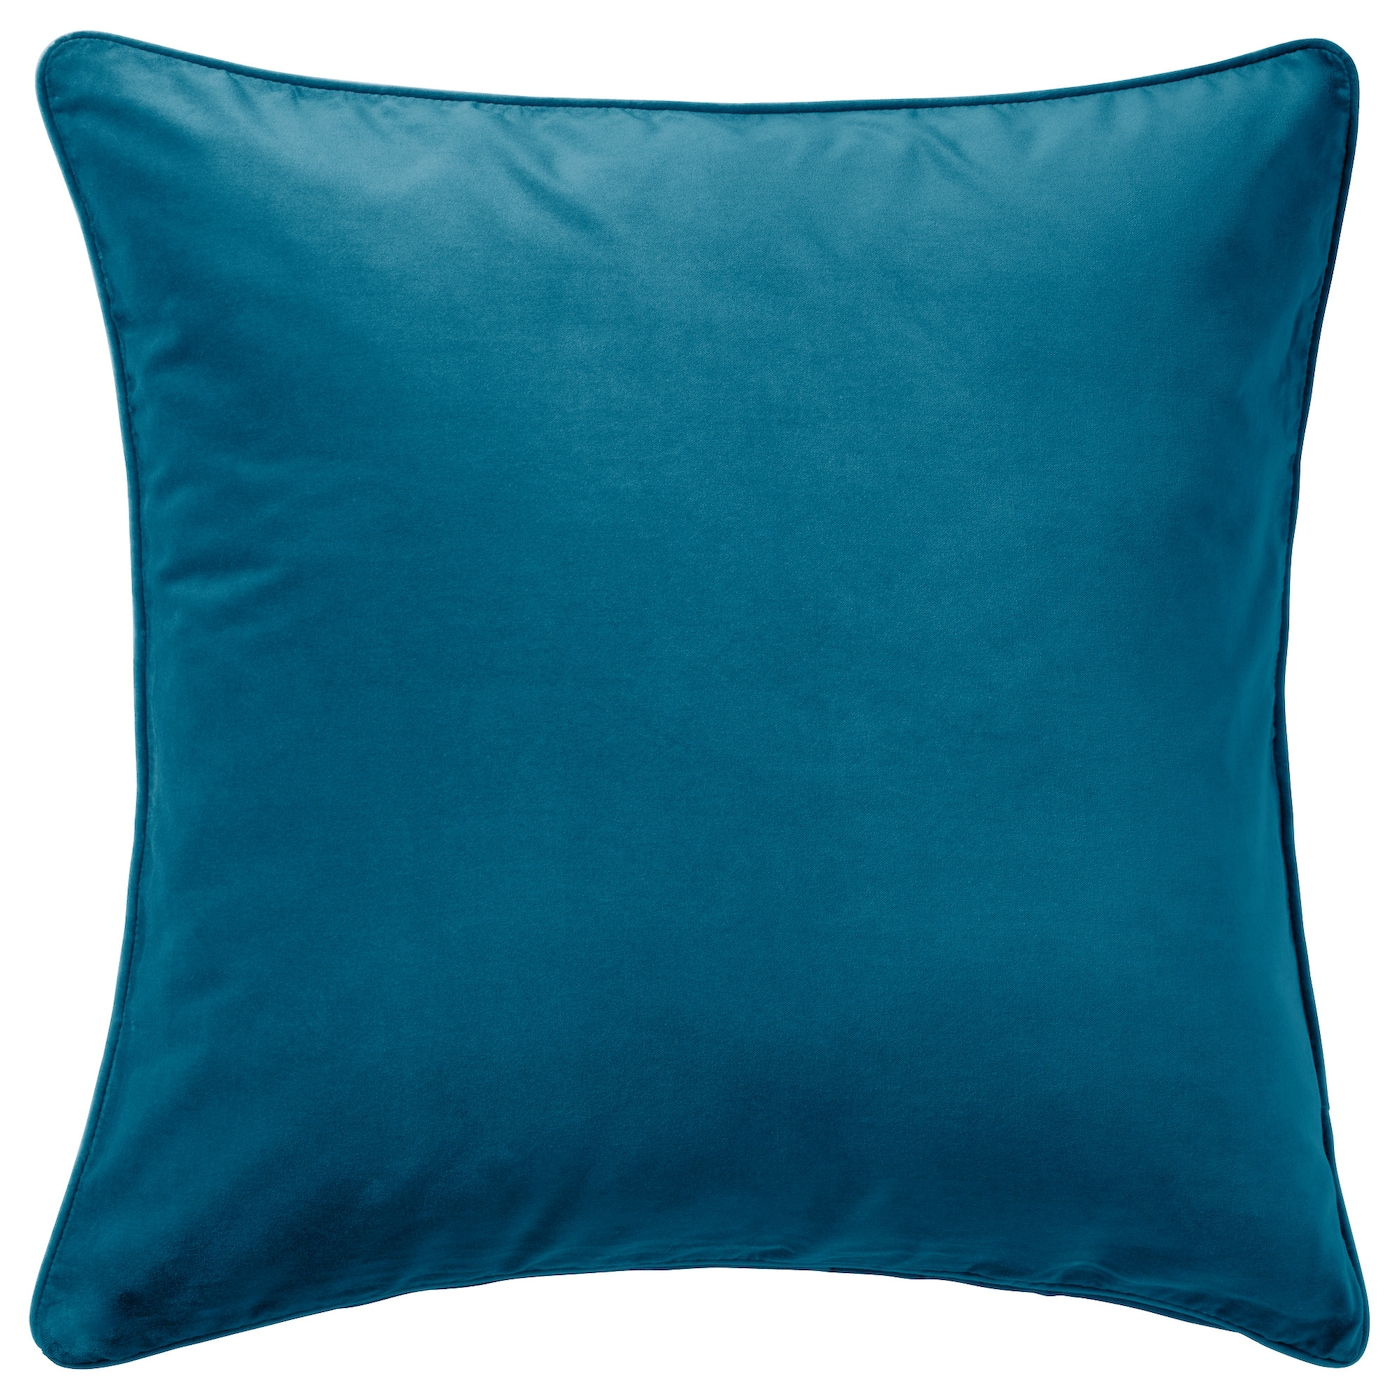 SANELA Cushion cover Dark turquoise 65x65 cm - IKEA